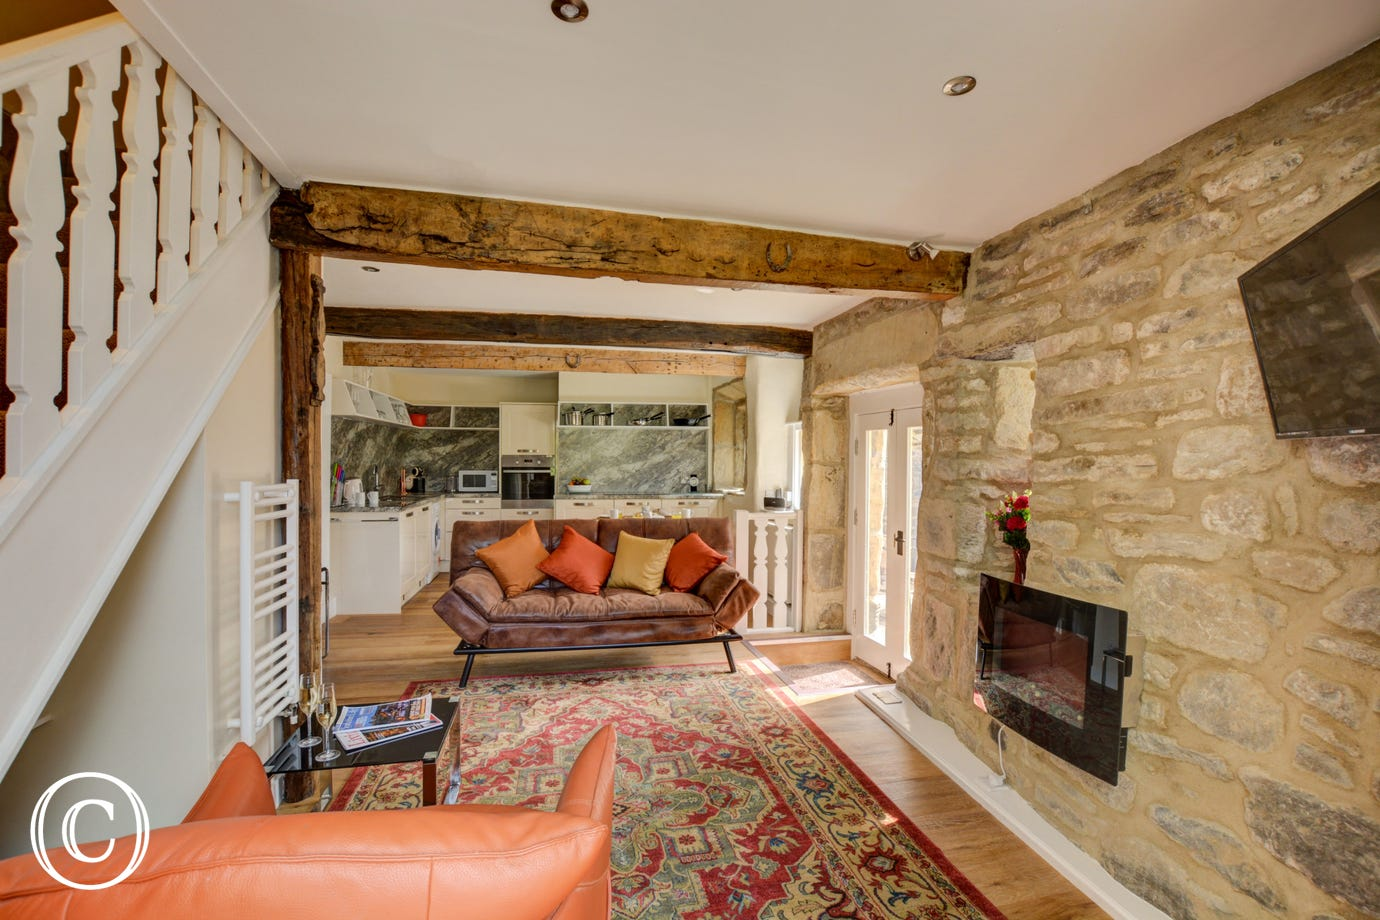 Open plan living area, with exposed stone walls, comfortable seating and well equipped kitchen